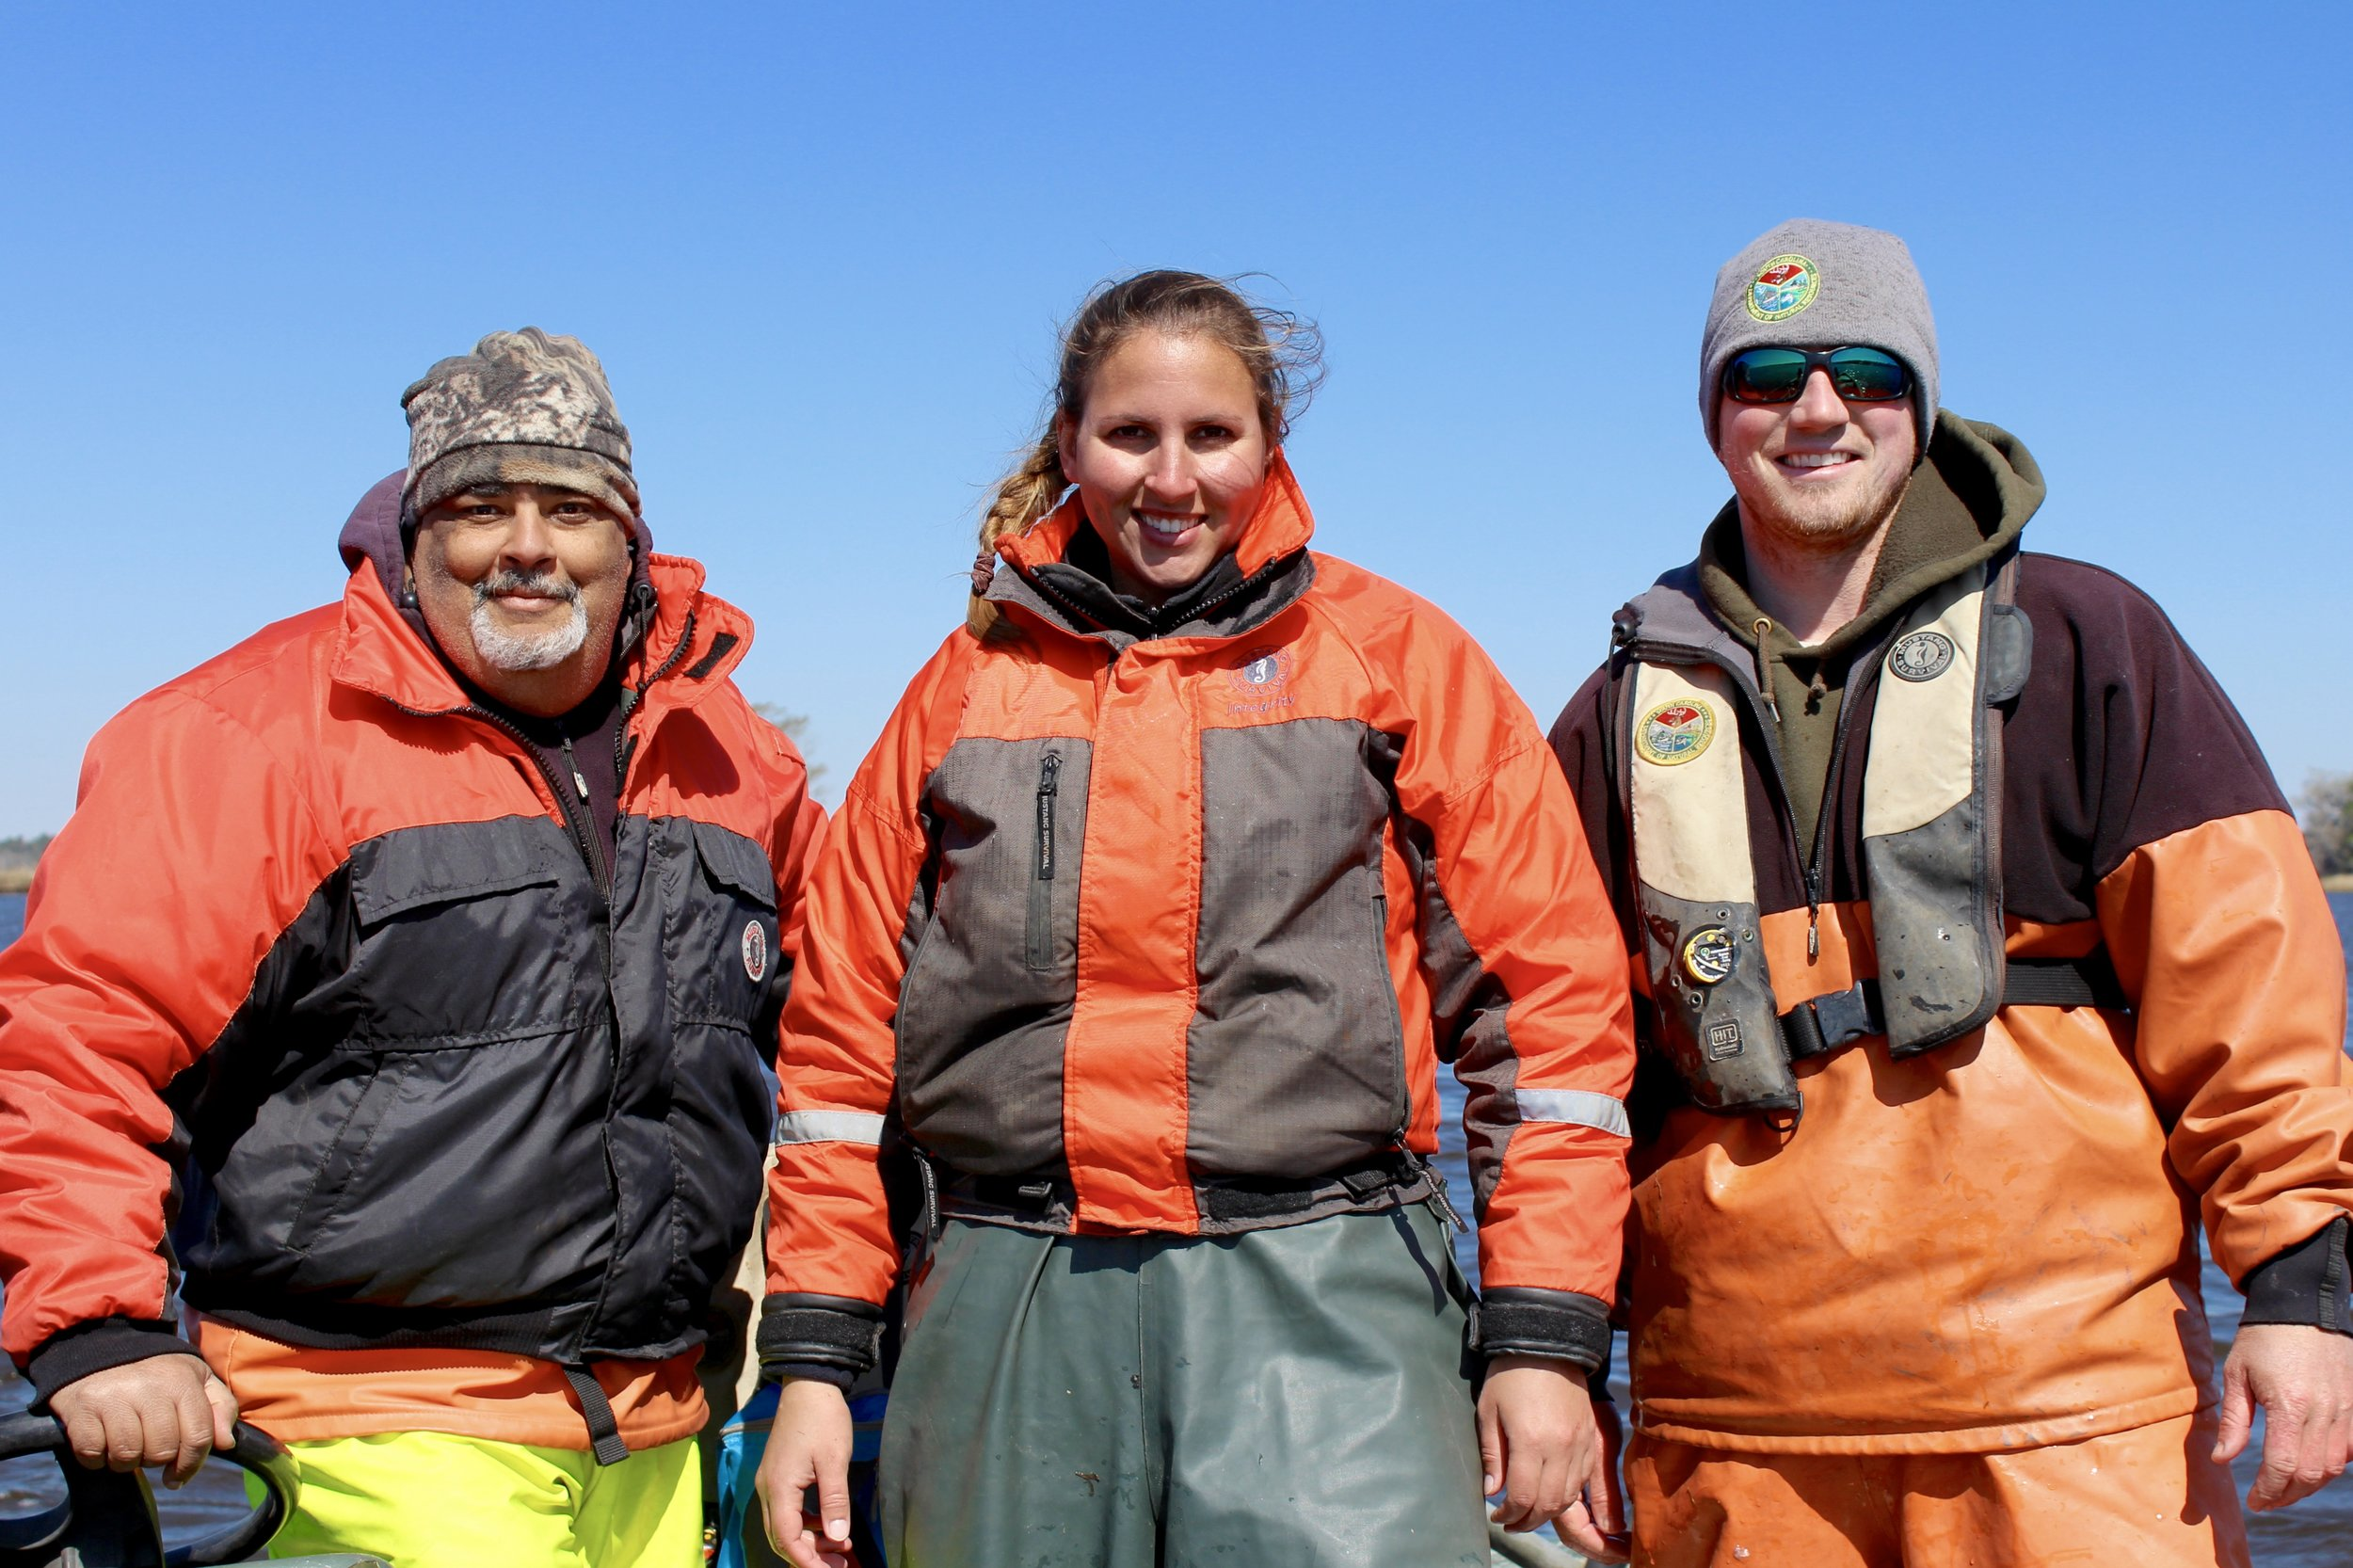 SCDNR's Allan Hazel, Kayla Rudnay, and Andrew Watson after a freezing day on the Waccamaw River (Photo: E. Weeks/SCDNR)